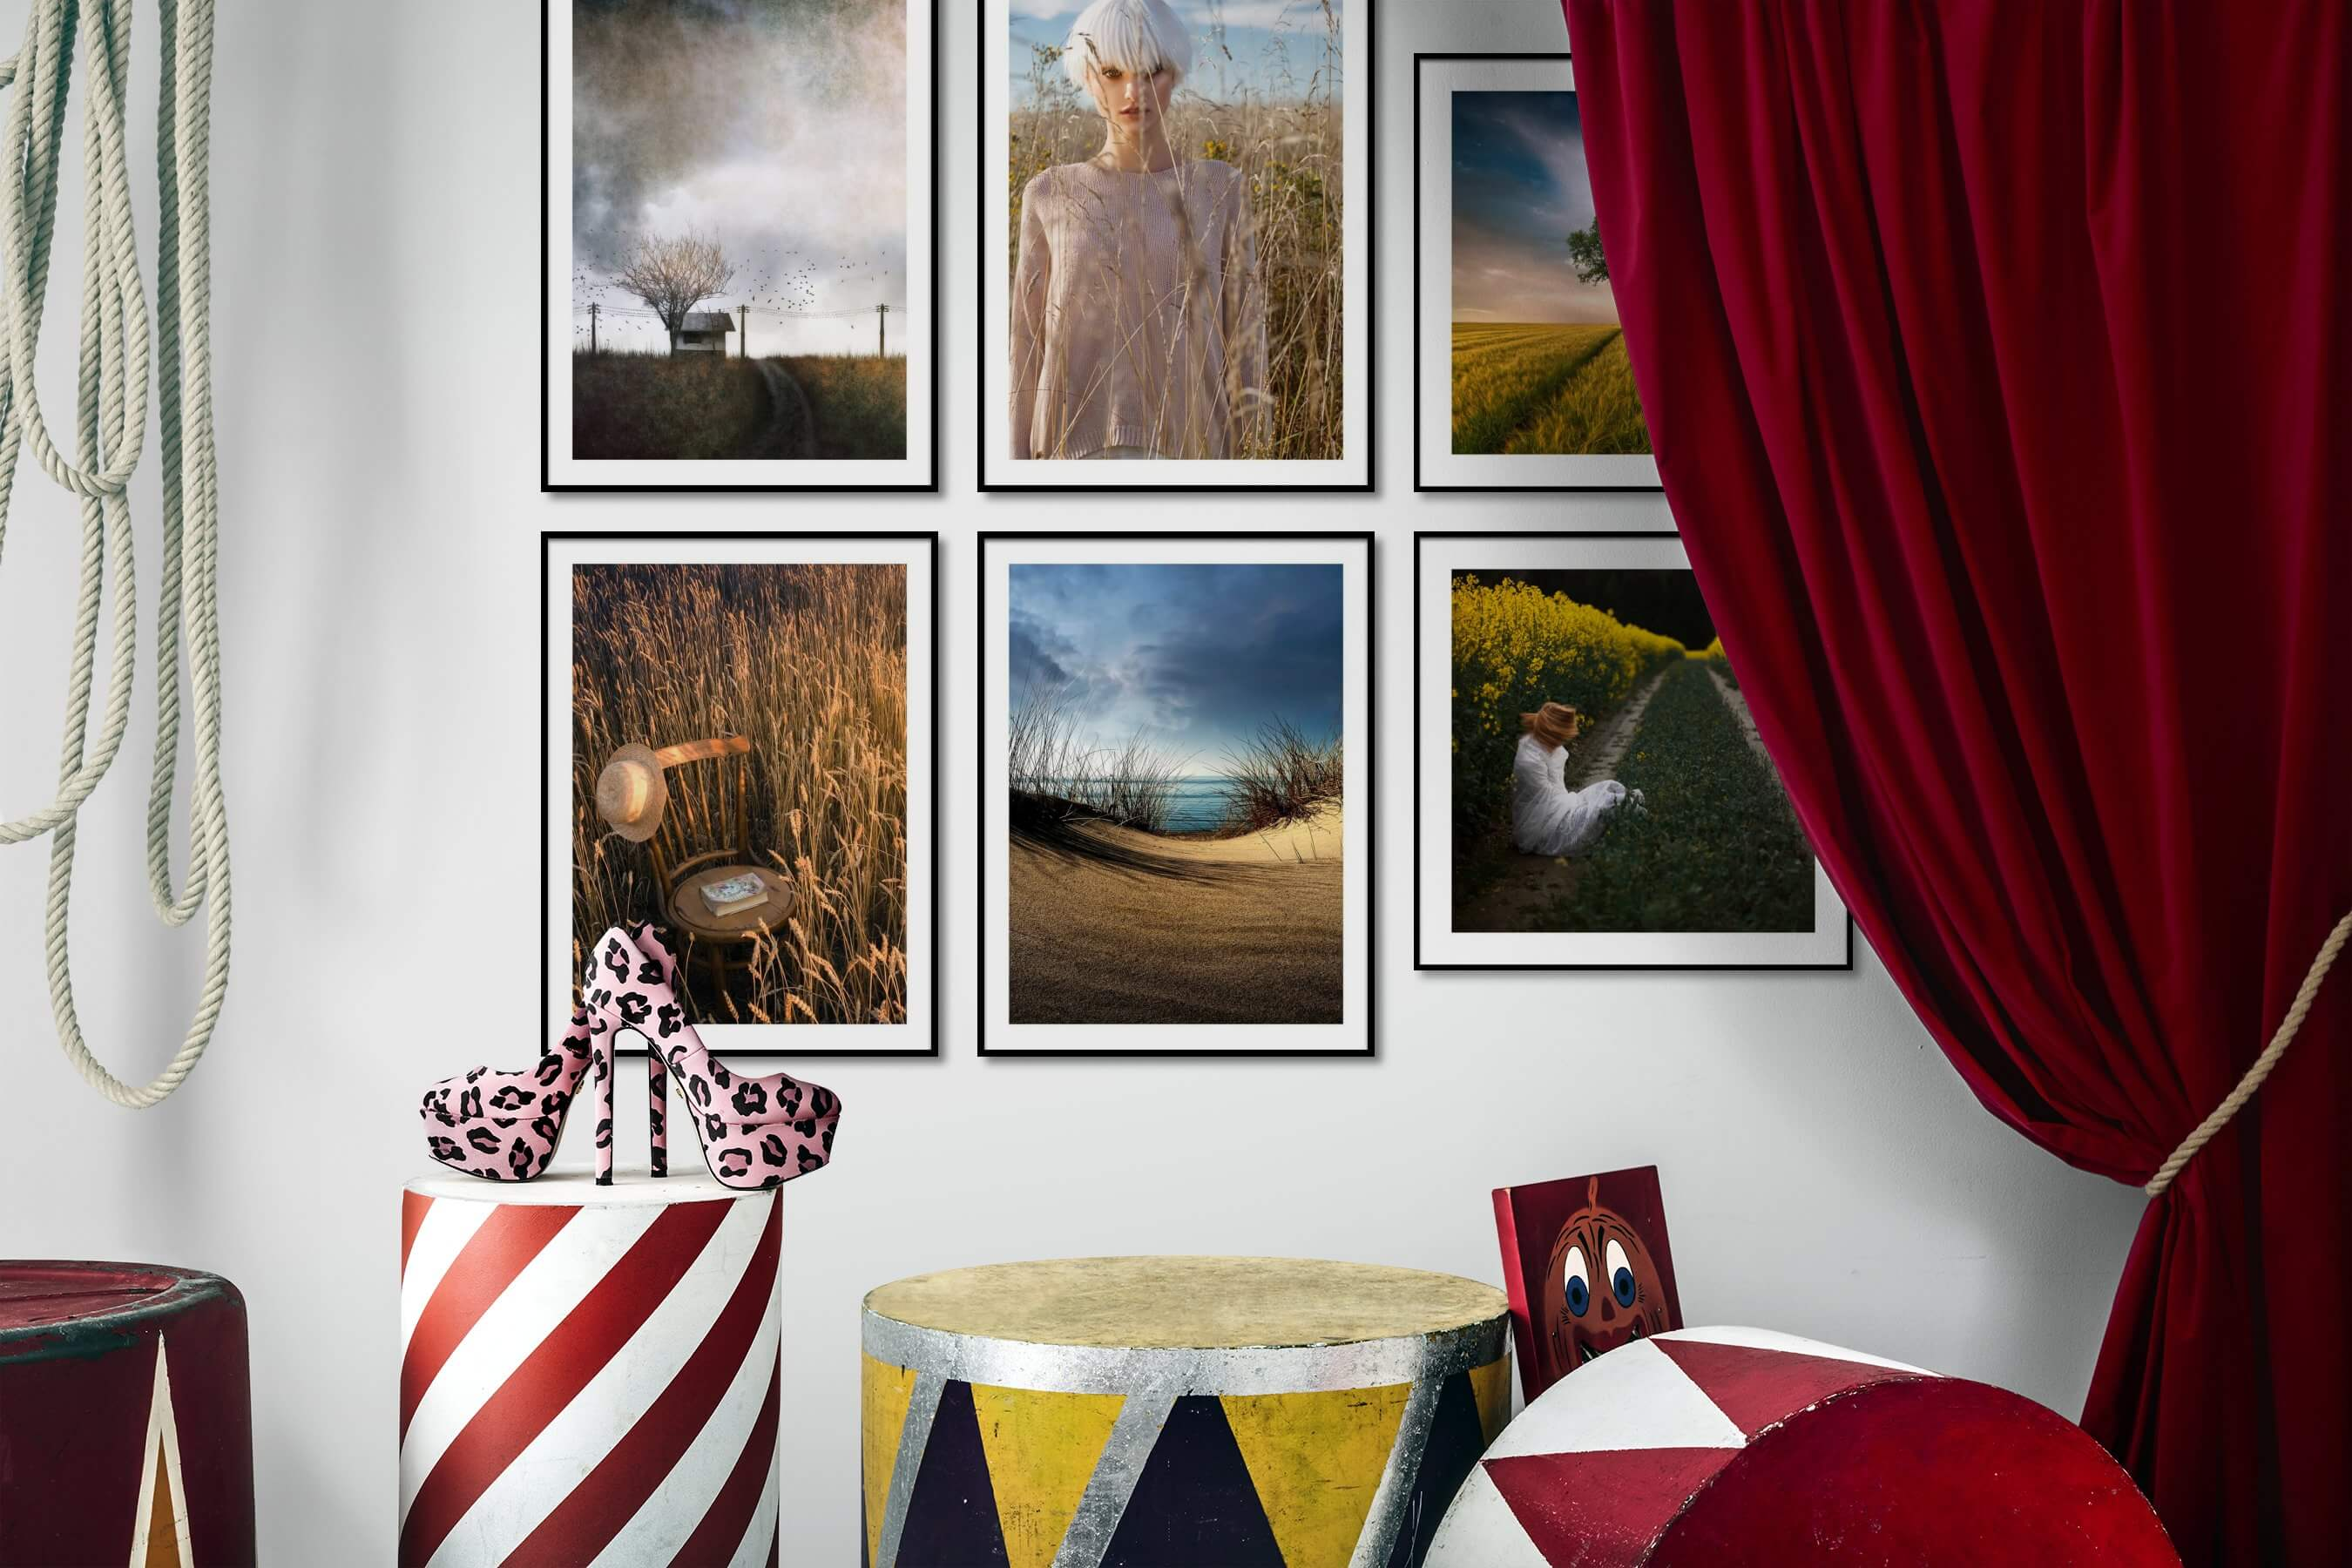 Gallery wall idea with six framed pictures arranged on a wall depicting Country Life, Fashion & Beauty, Mindfulness, For the Moderate, Beach & Water, and Artsy